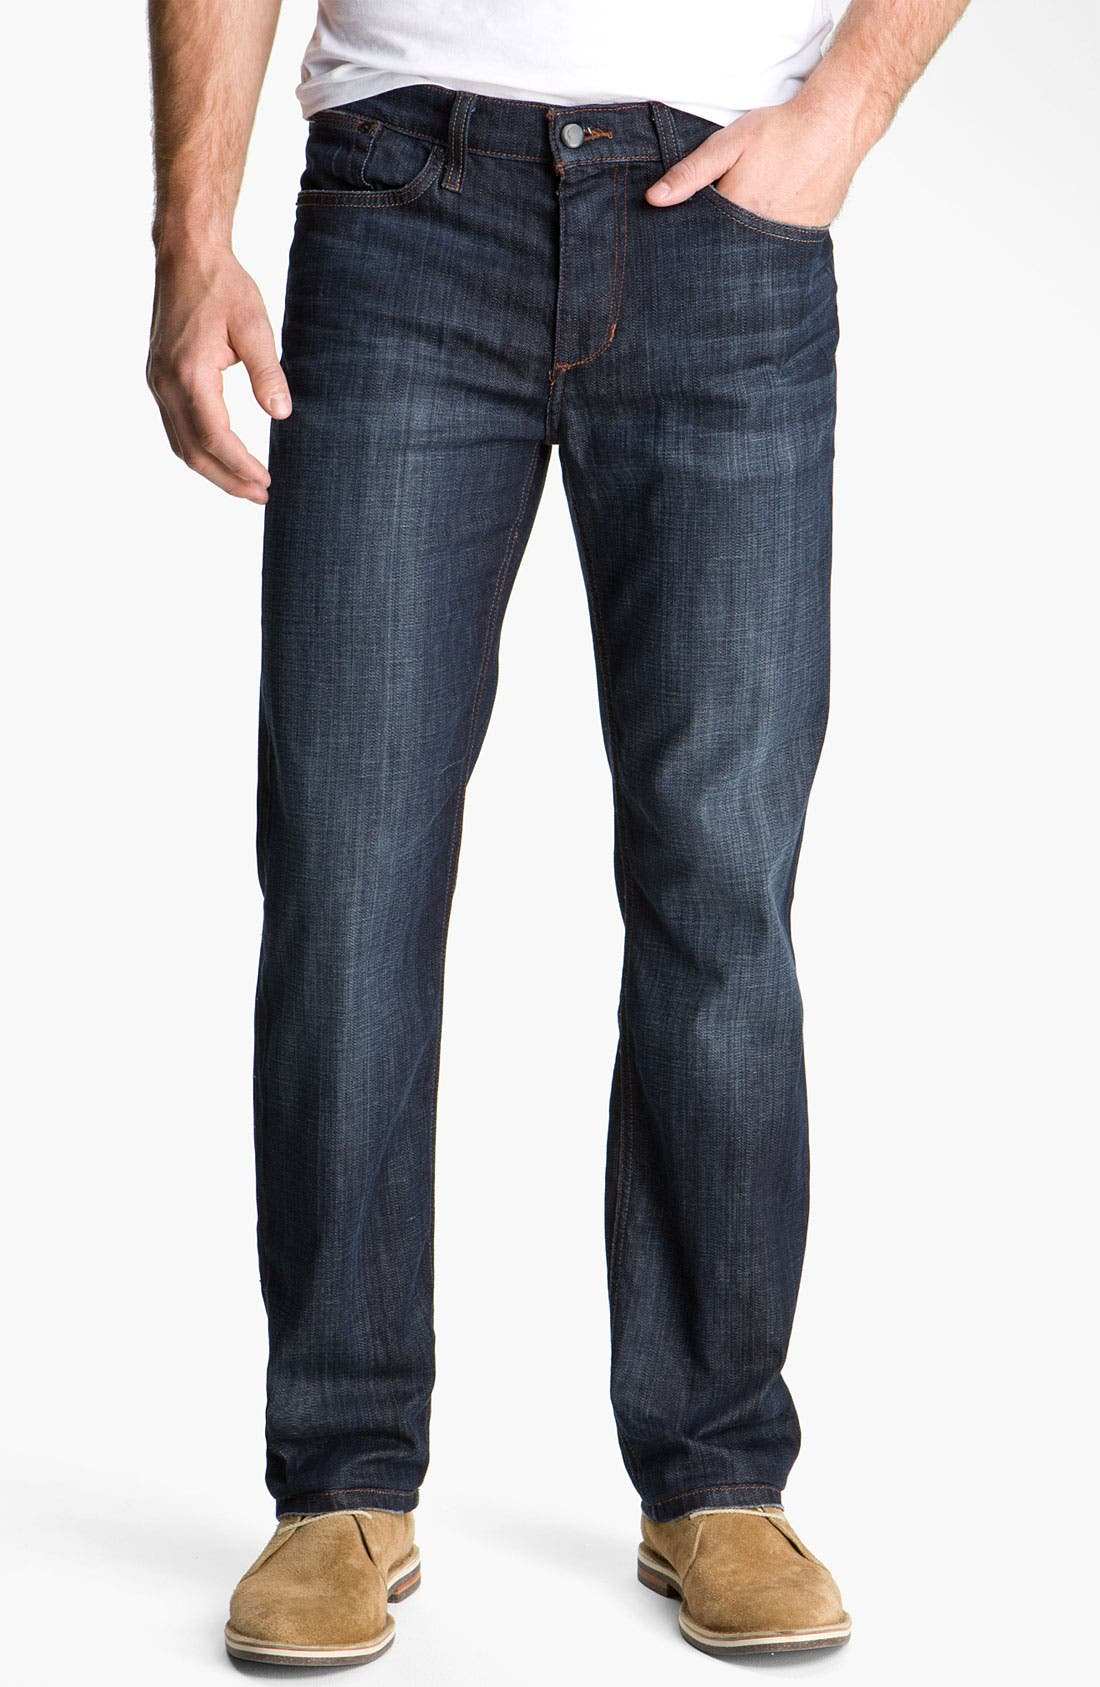 Alternate Image 1 Selected - Joe's 'Classic' Straight Leg Jeans (Dixon)